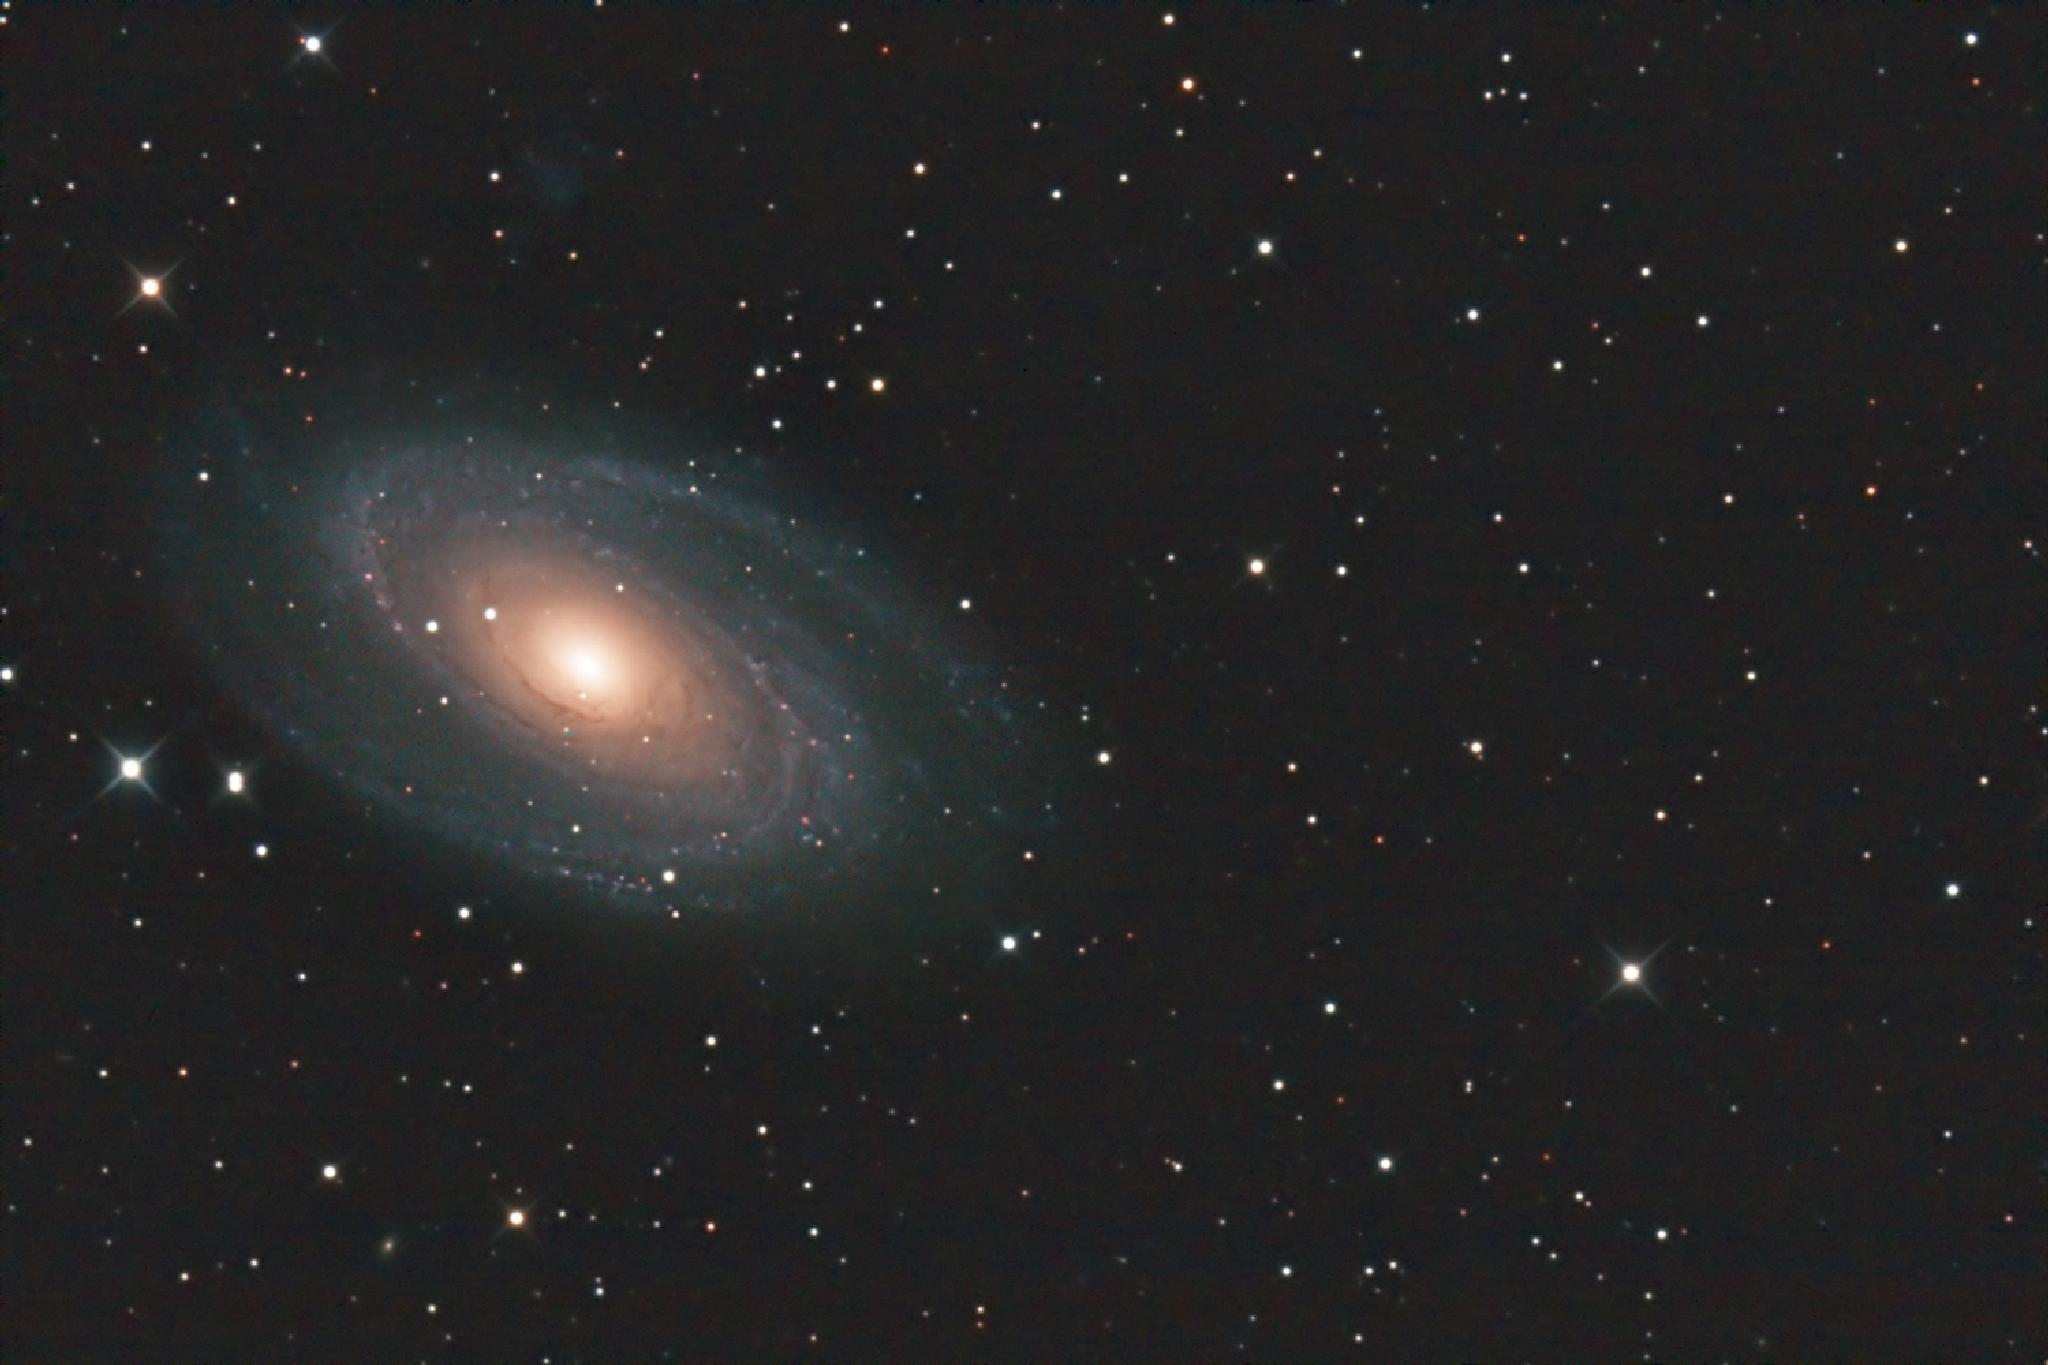 Messier 81 by roberthaeberle